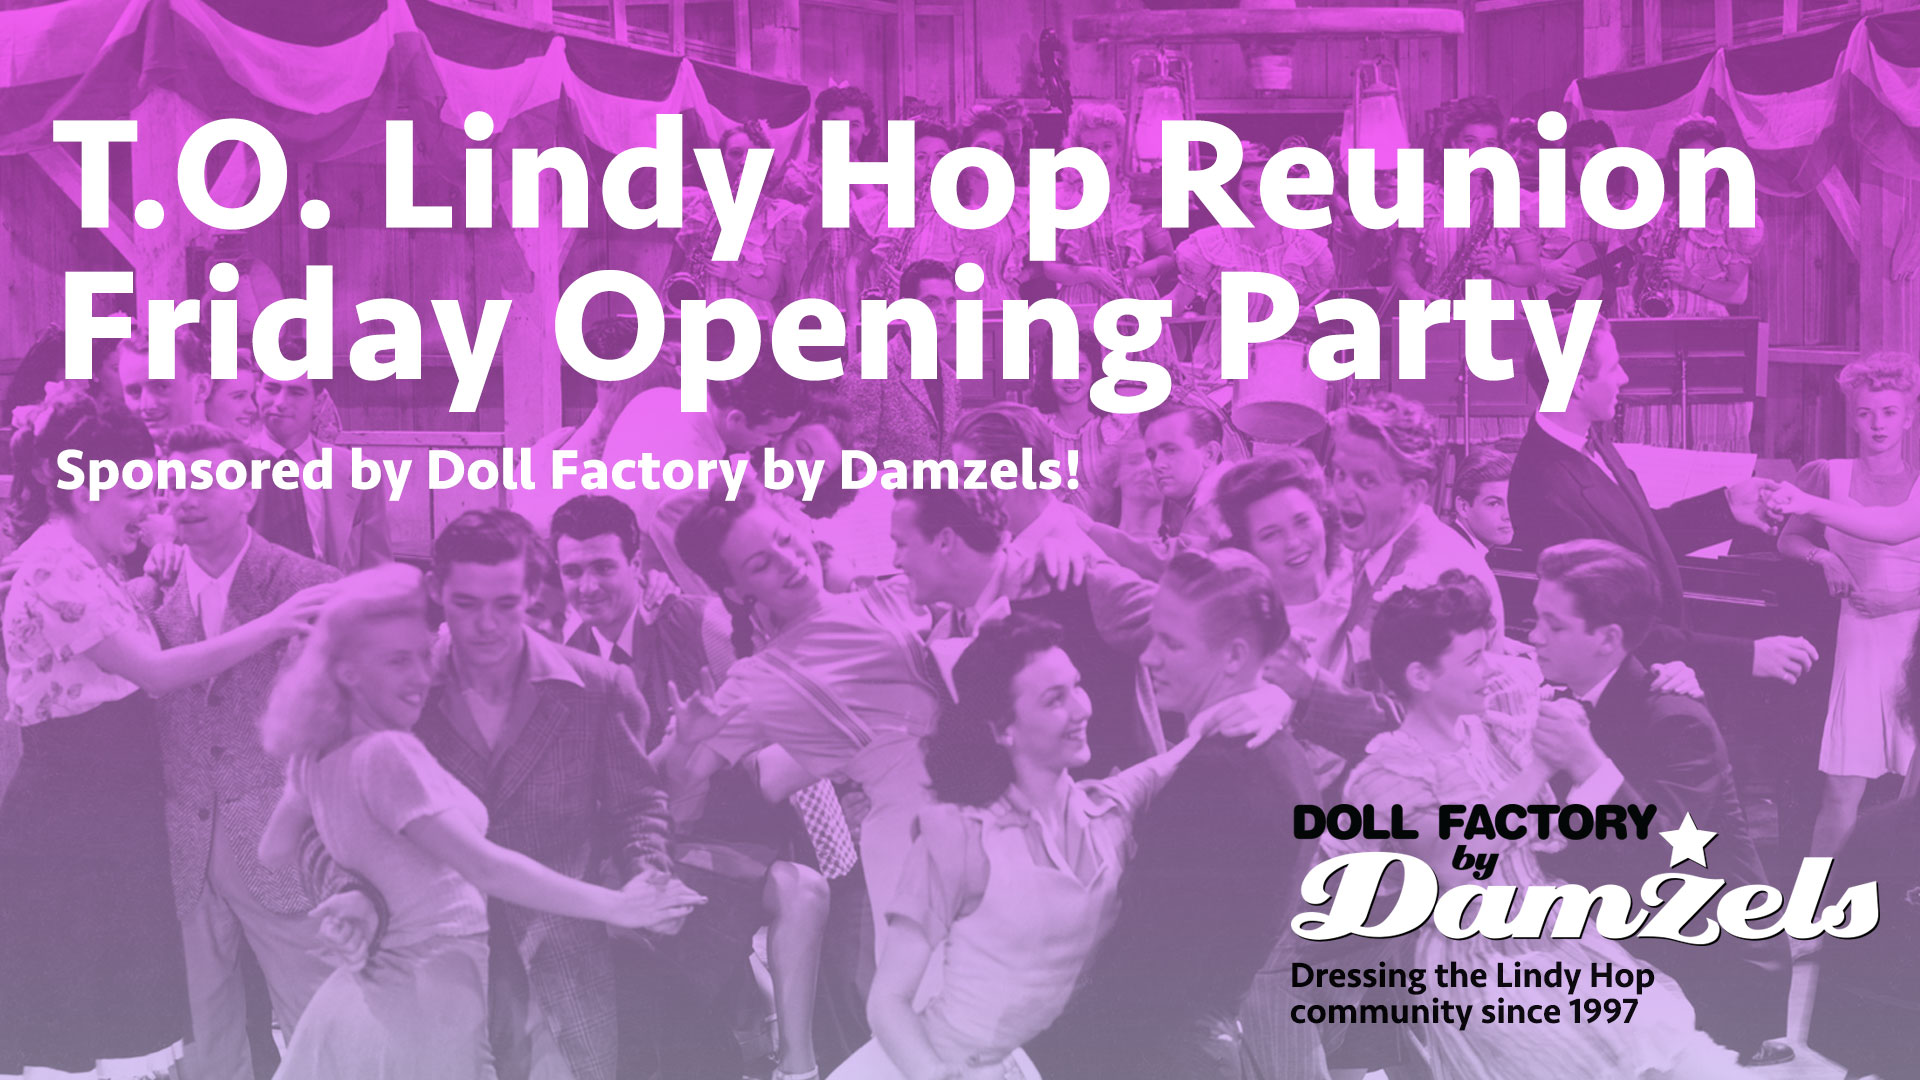 The Friday Opening Party is sponsored by Doll Factory by Damzels!